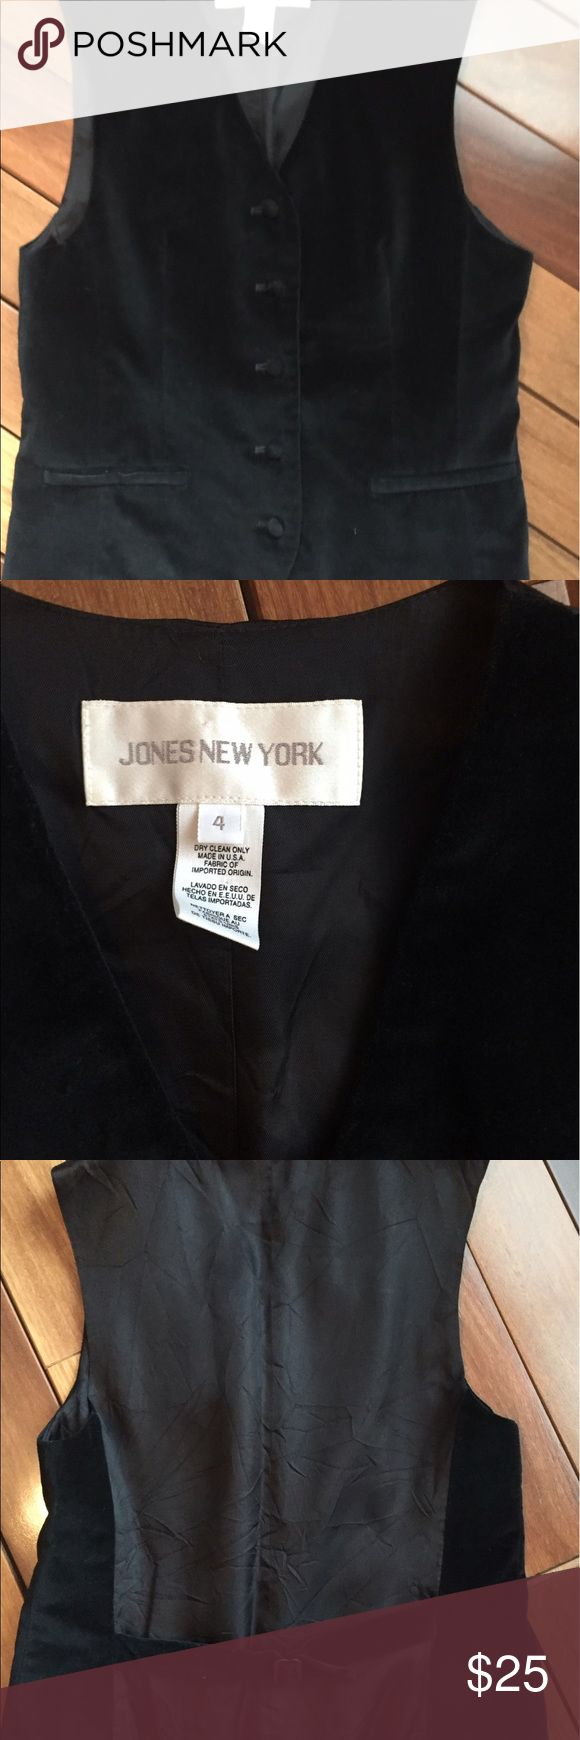 Jones New York velvet vest size 4 Velvet is in for the season girls! This great black vest is velvet in the front and sides but satin in the back so it still slides easily against your car seat for instance. Has a way to pull it in the back a little if desired for a more defined fit. Jones New York Jackets & Coats Vests